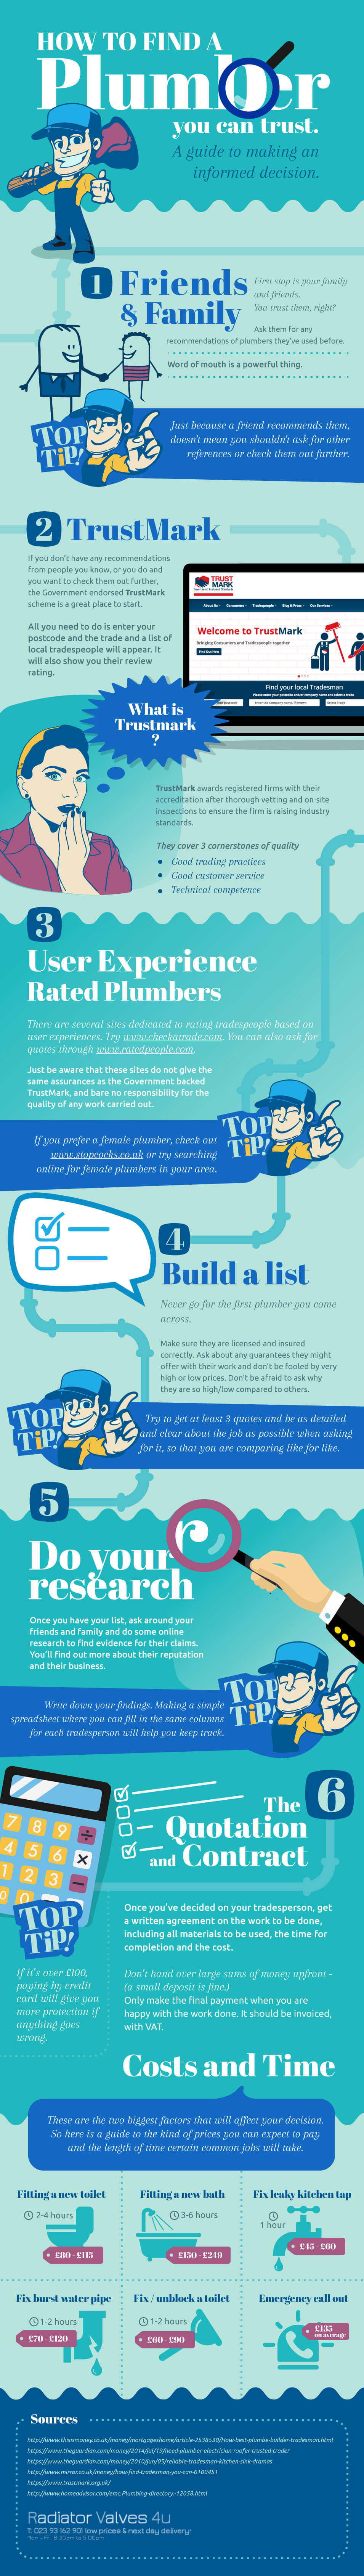 how-to-find-a-plumber-you-can-trust-infographic-plaza